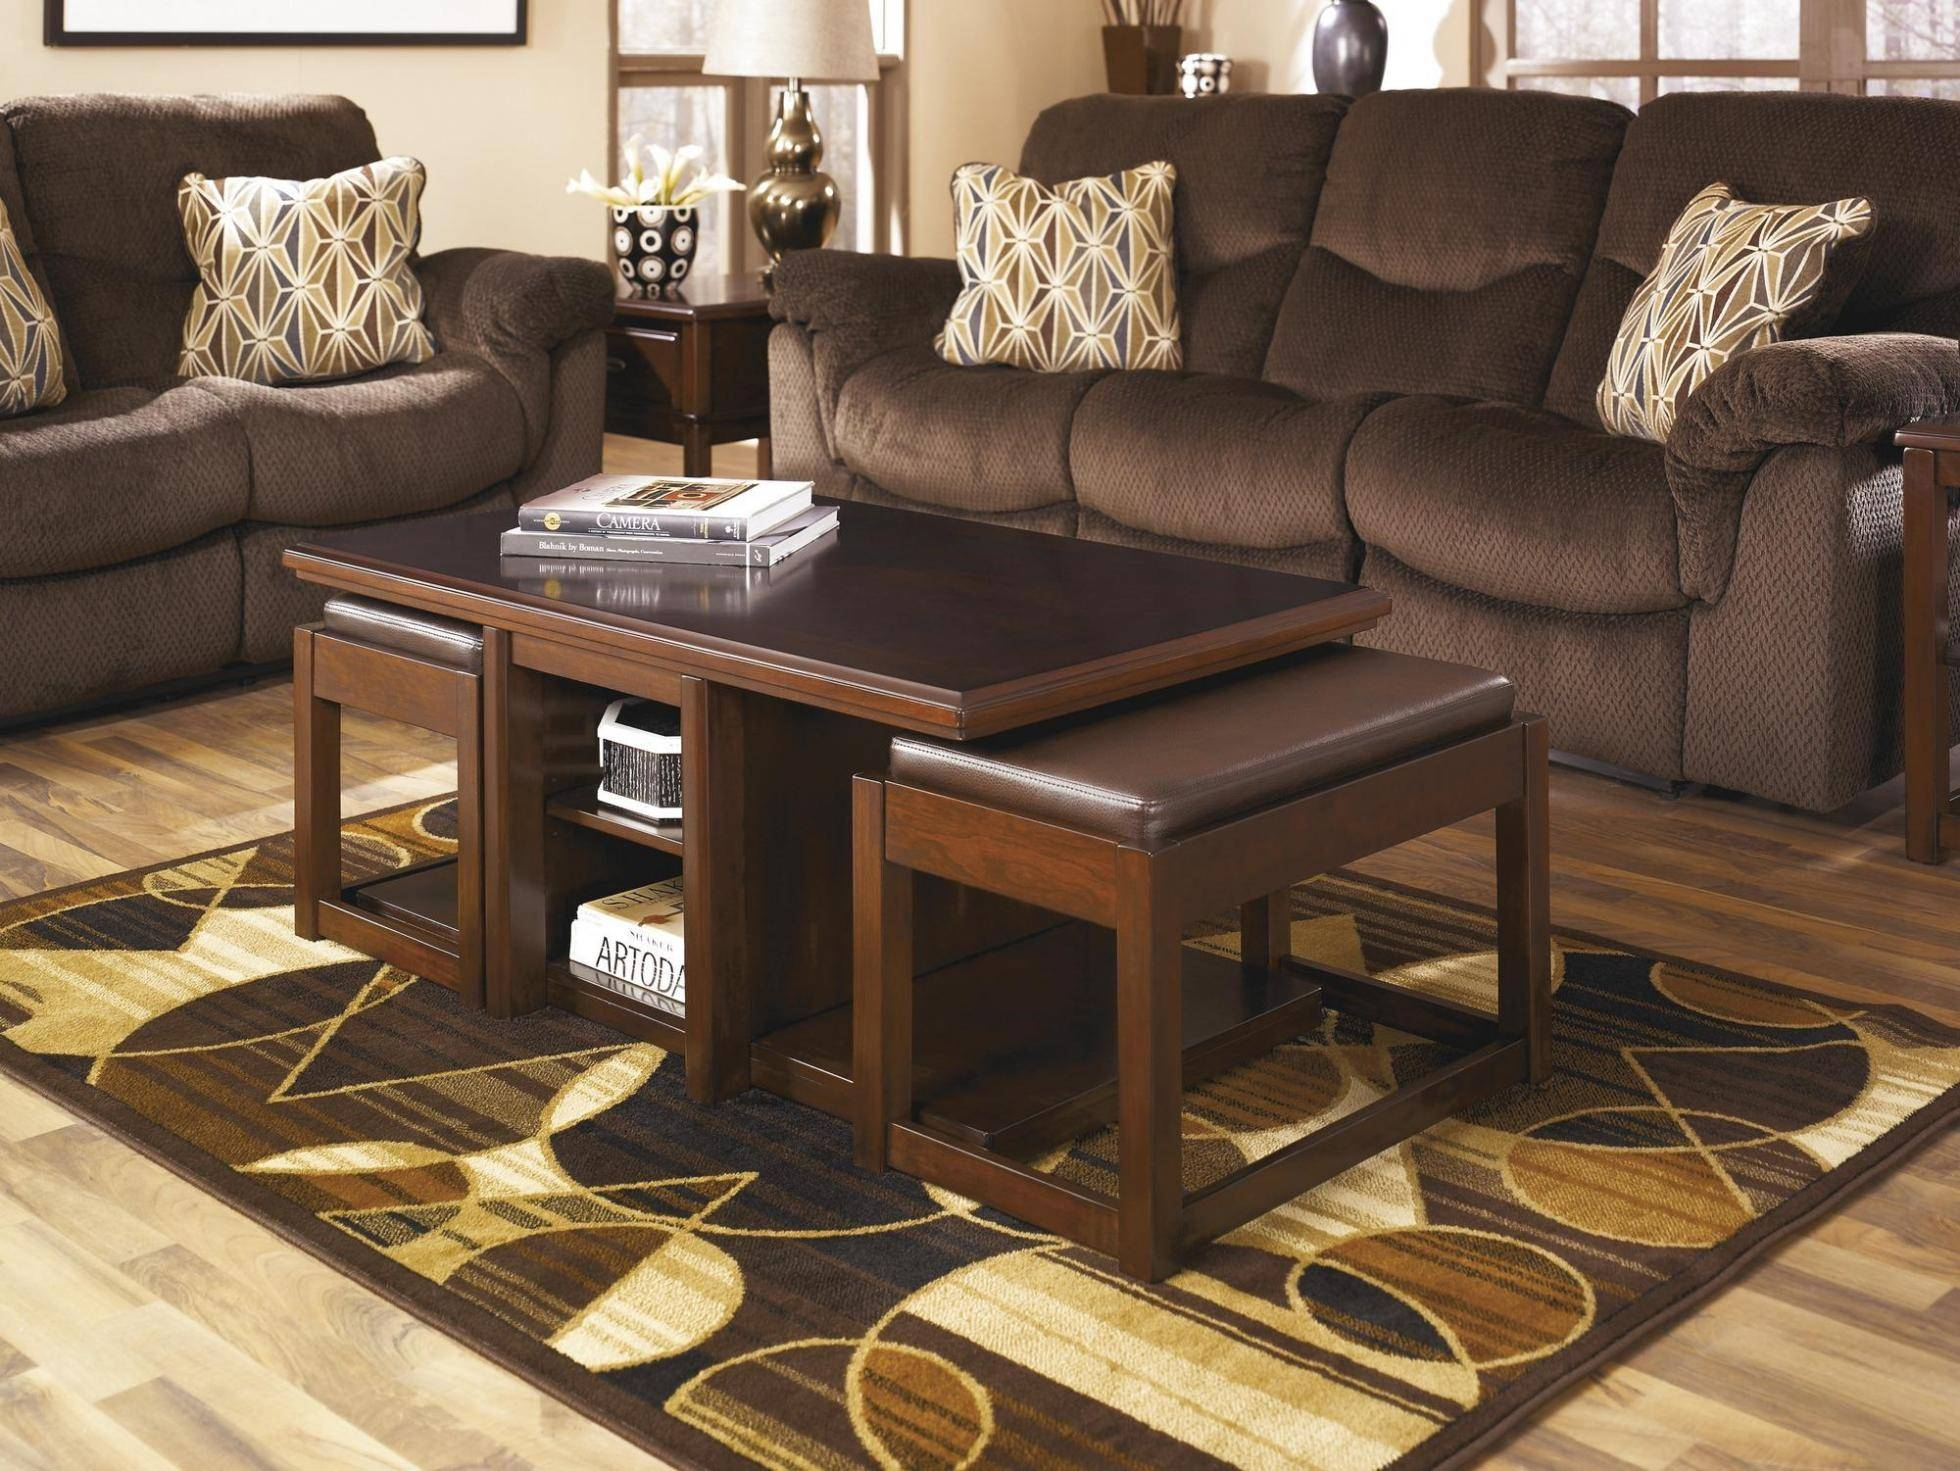 Furniture: Round Coffee Table With Stools Underneath Coffee Table within Coffee Tables With Basket Storage Underneath (Image 18 of 30)